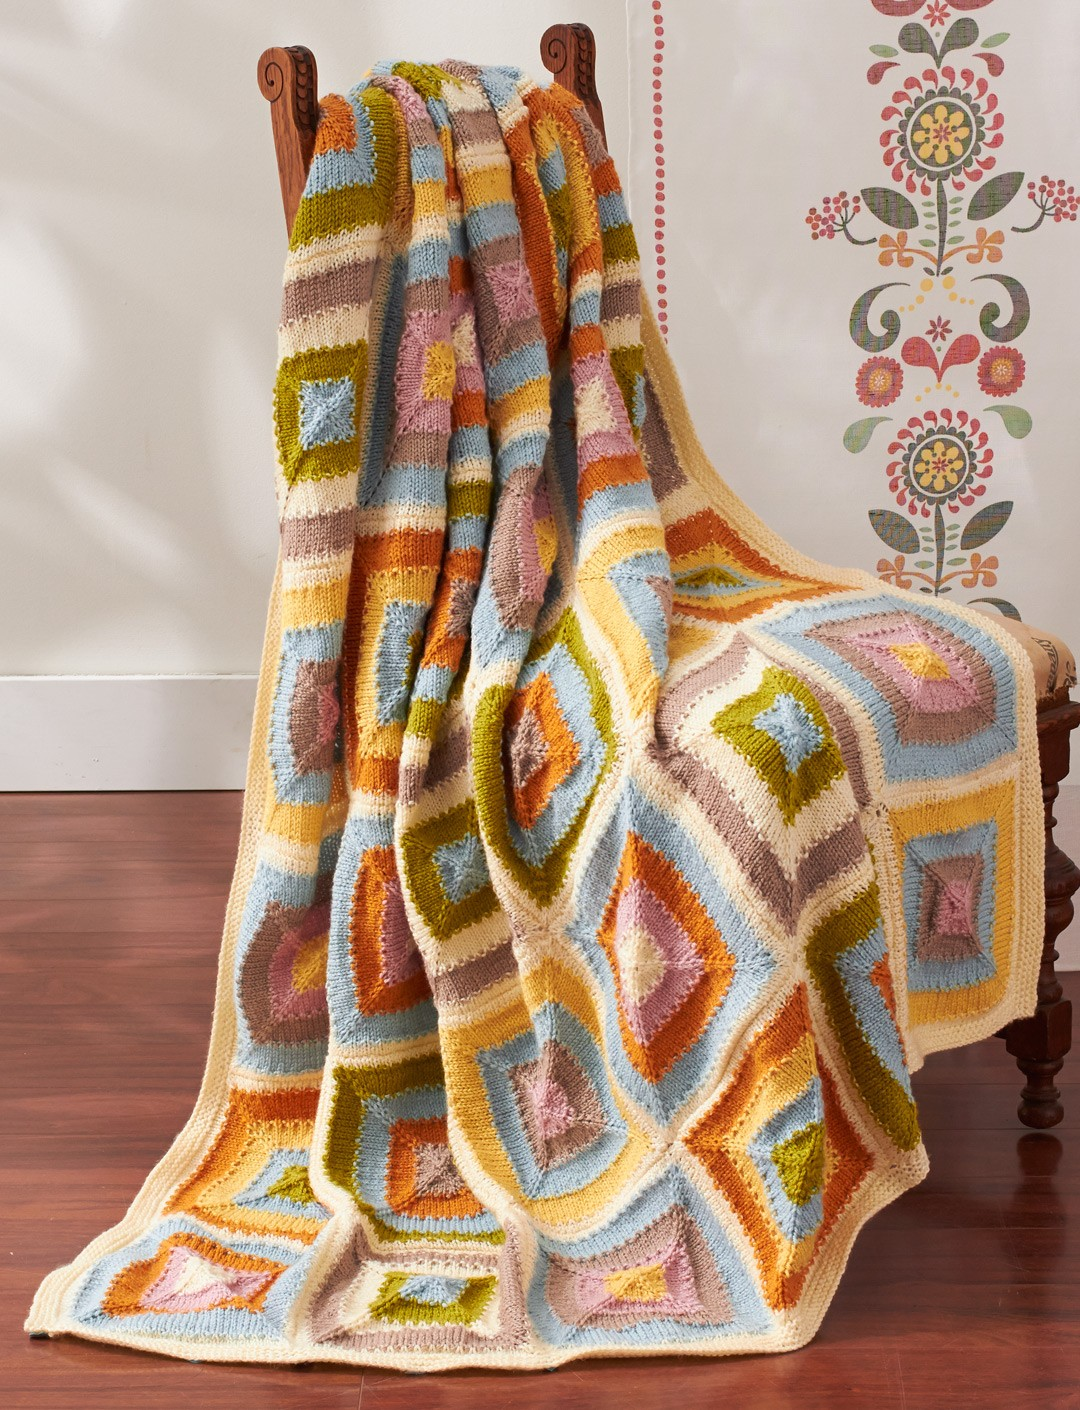 Patons Patchwork Blanket, Knit Pattern Yarnspirations